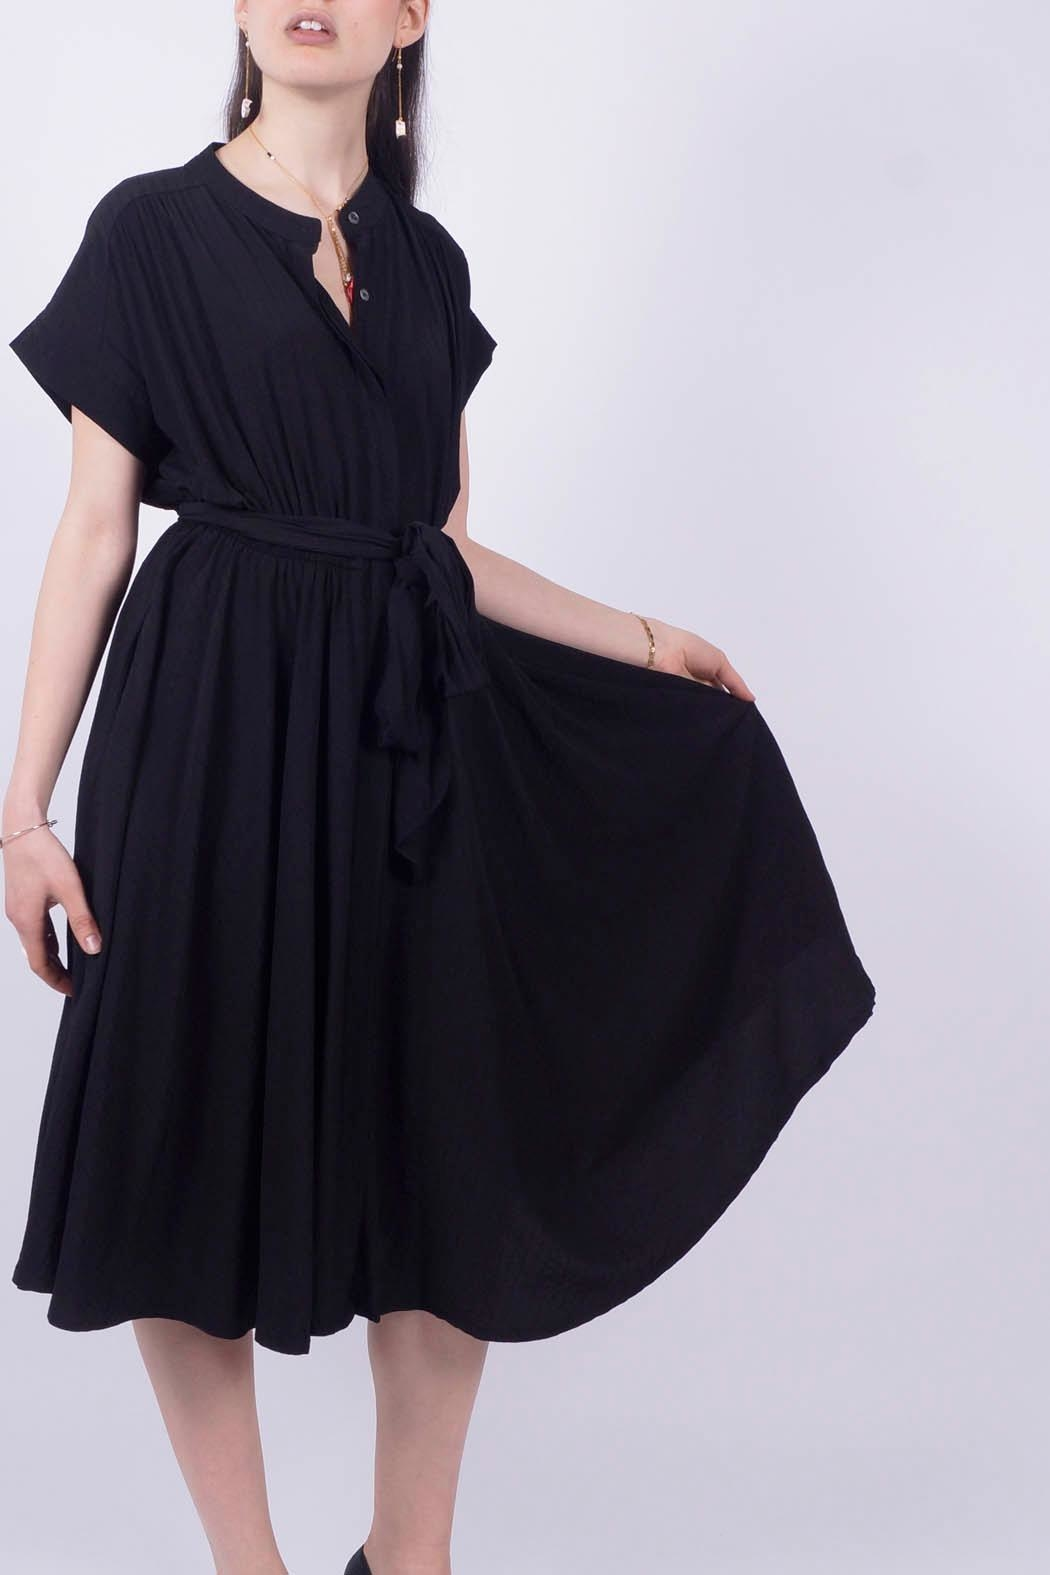 NU New York Black Shirt Dress - Main Image